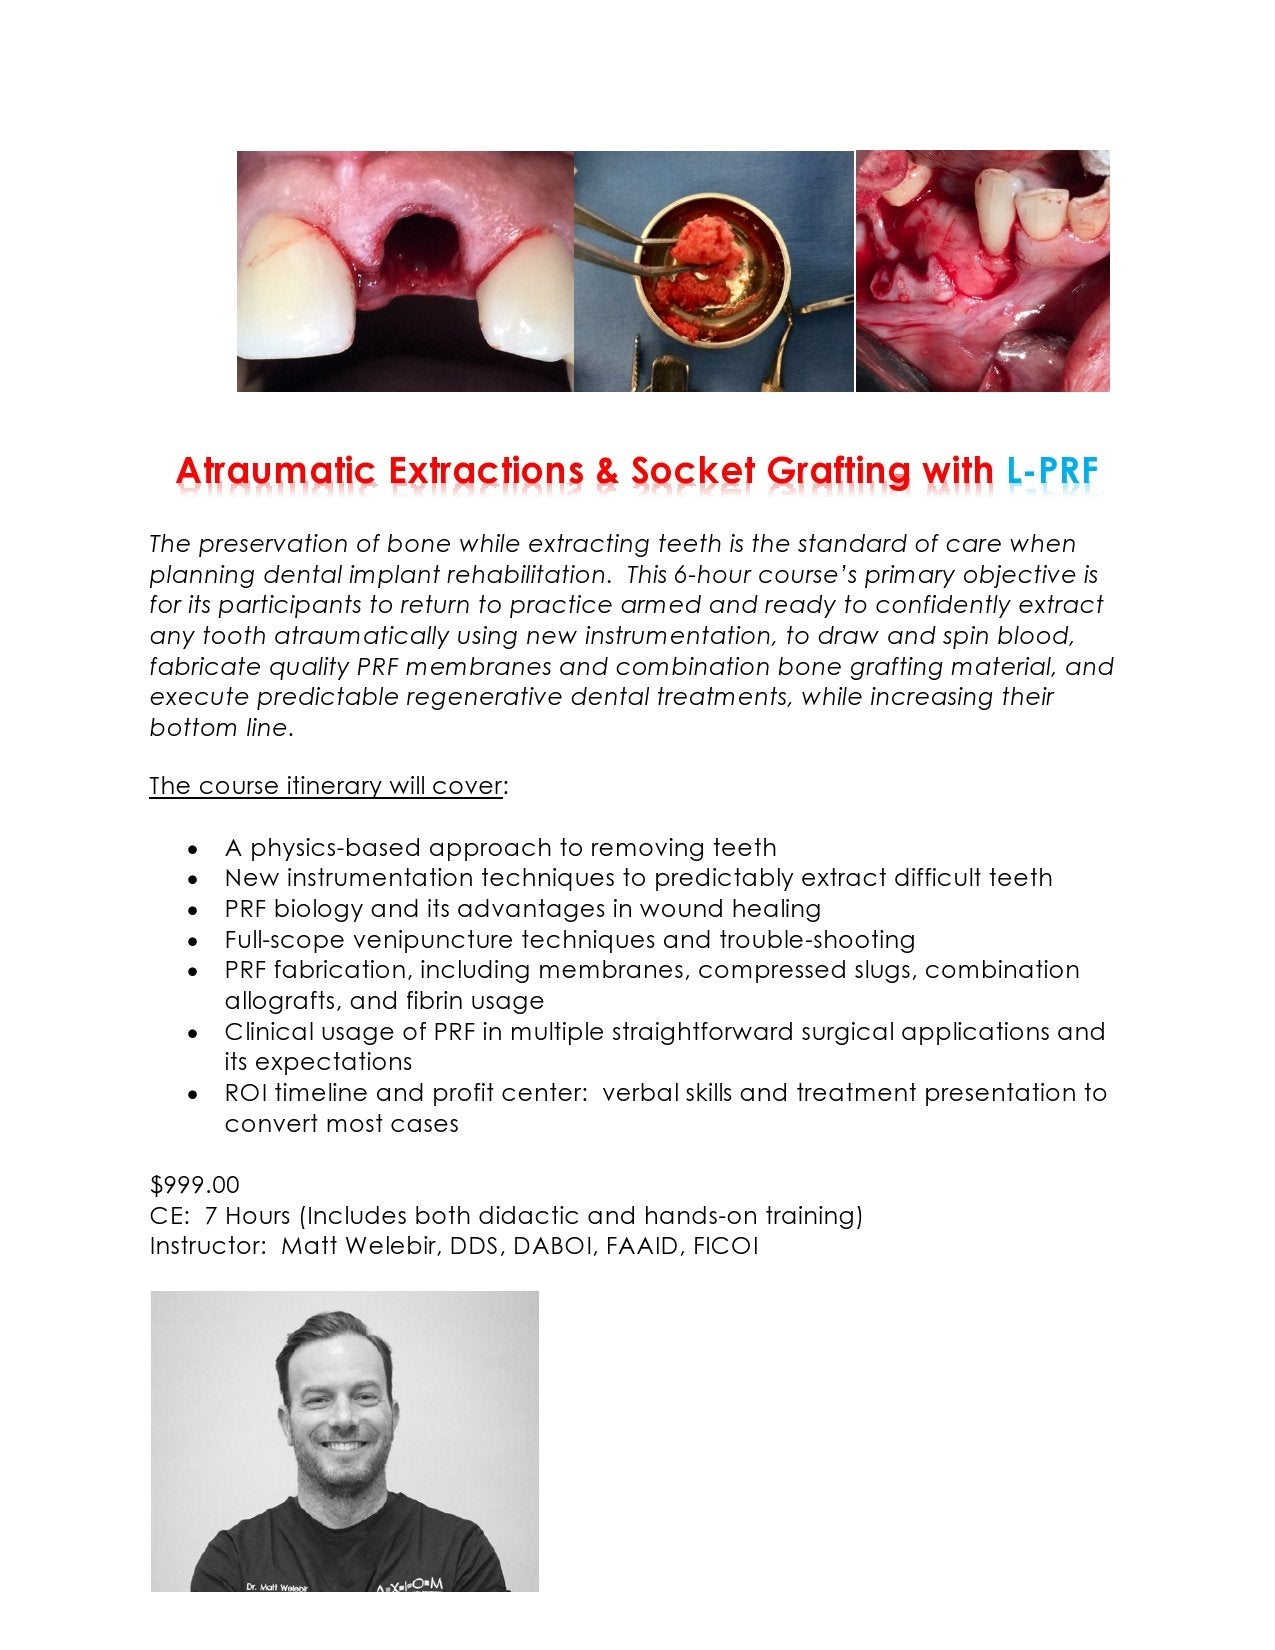 SOLD OUT Salt Lake City March 28 2020 Feeder Course:  Atraumatic Extractions & Socket Grafting with L-PRF  7 ceu  Hand-On